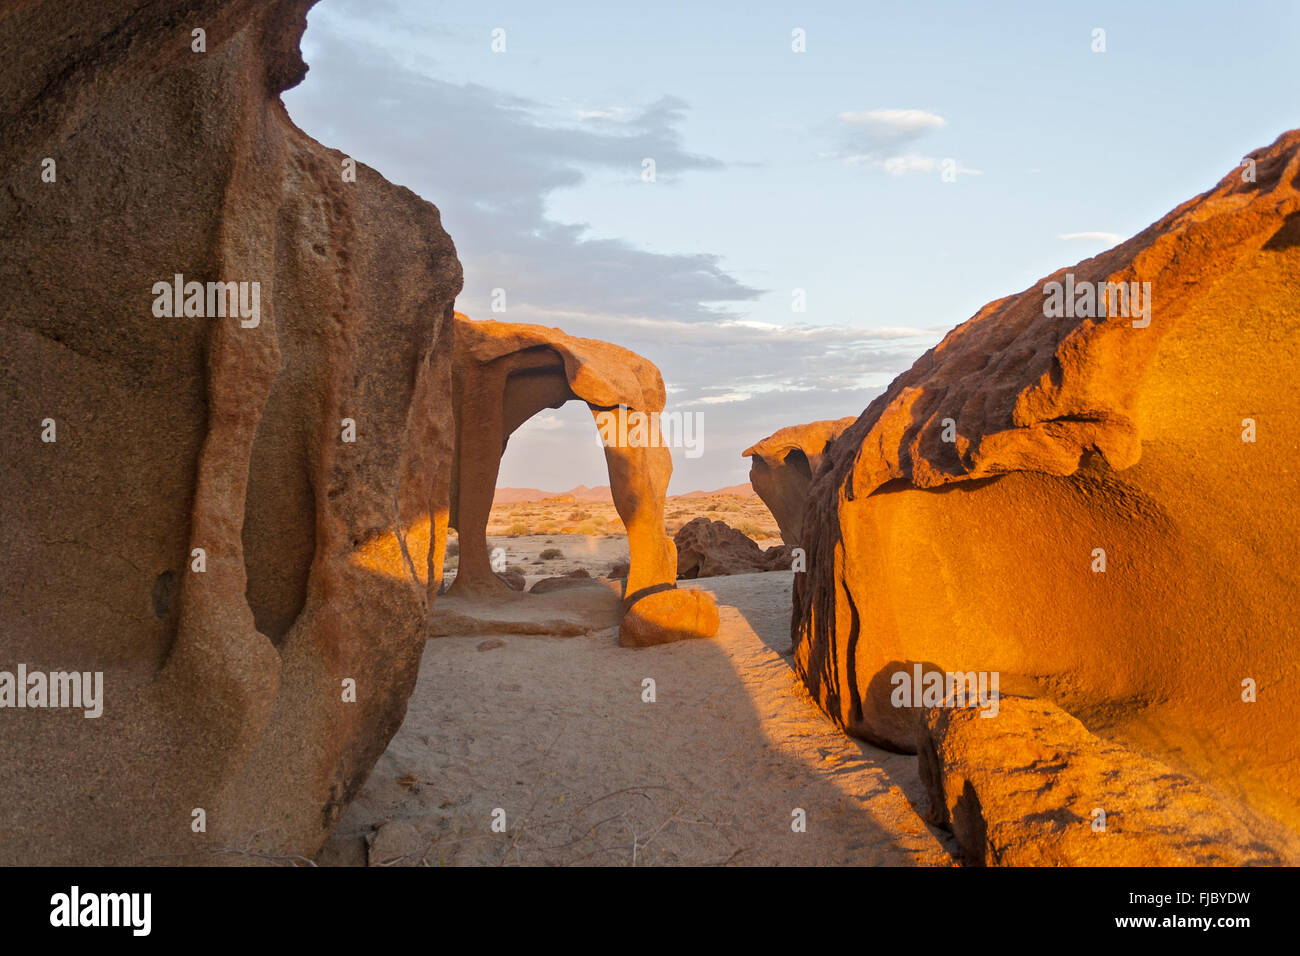 granite stone formation in the north of the Welwitschia Plains, Namibia - Stock Image